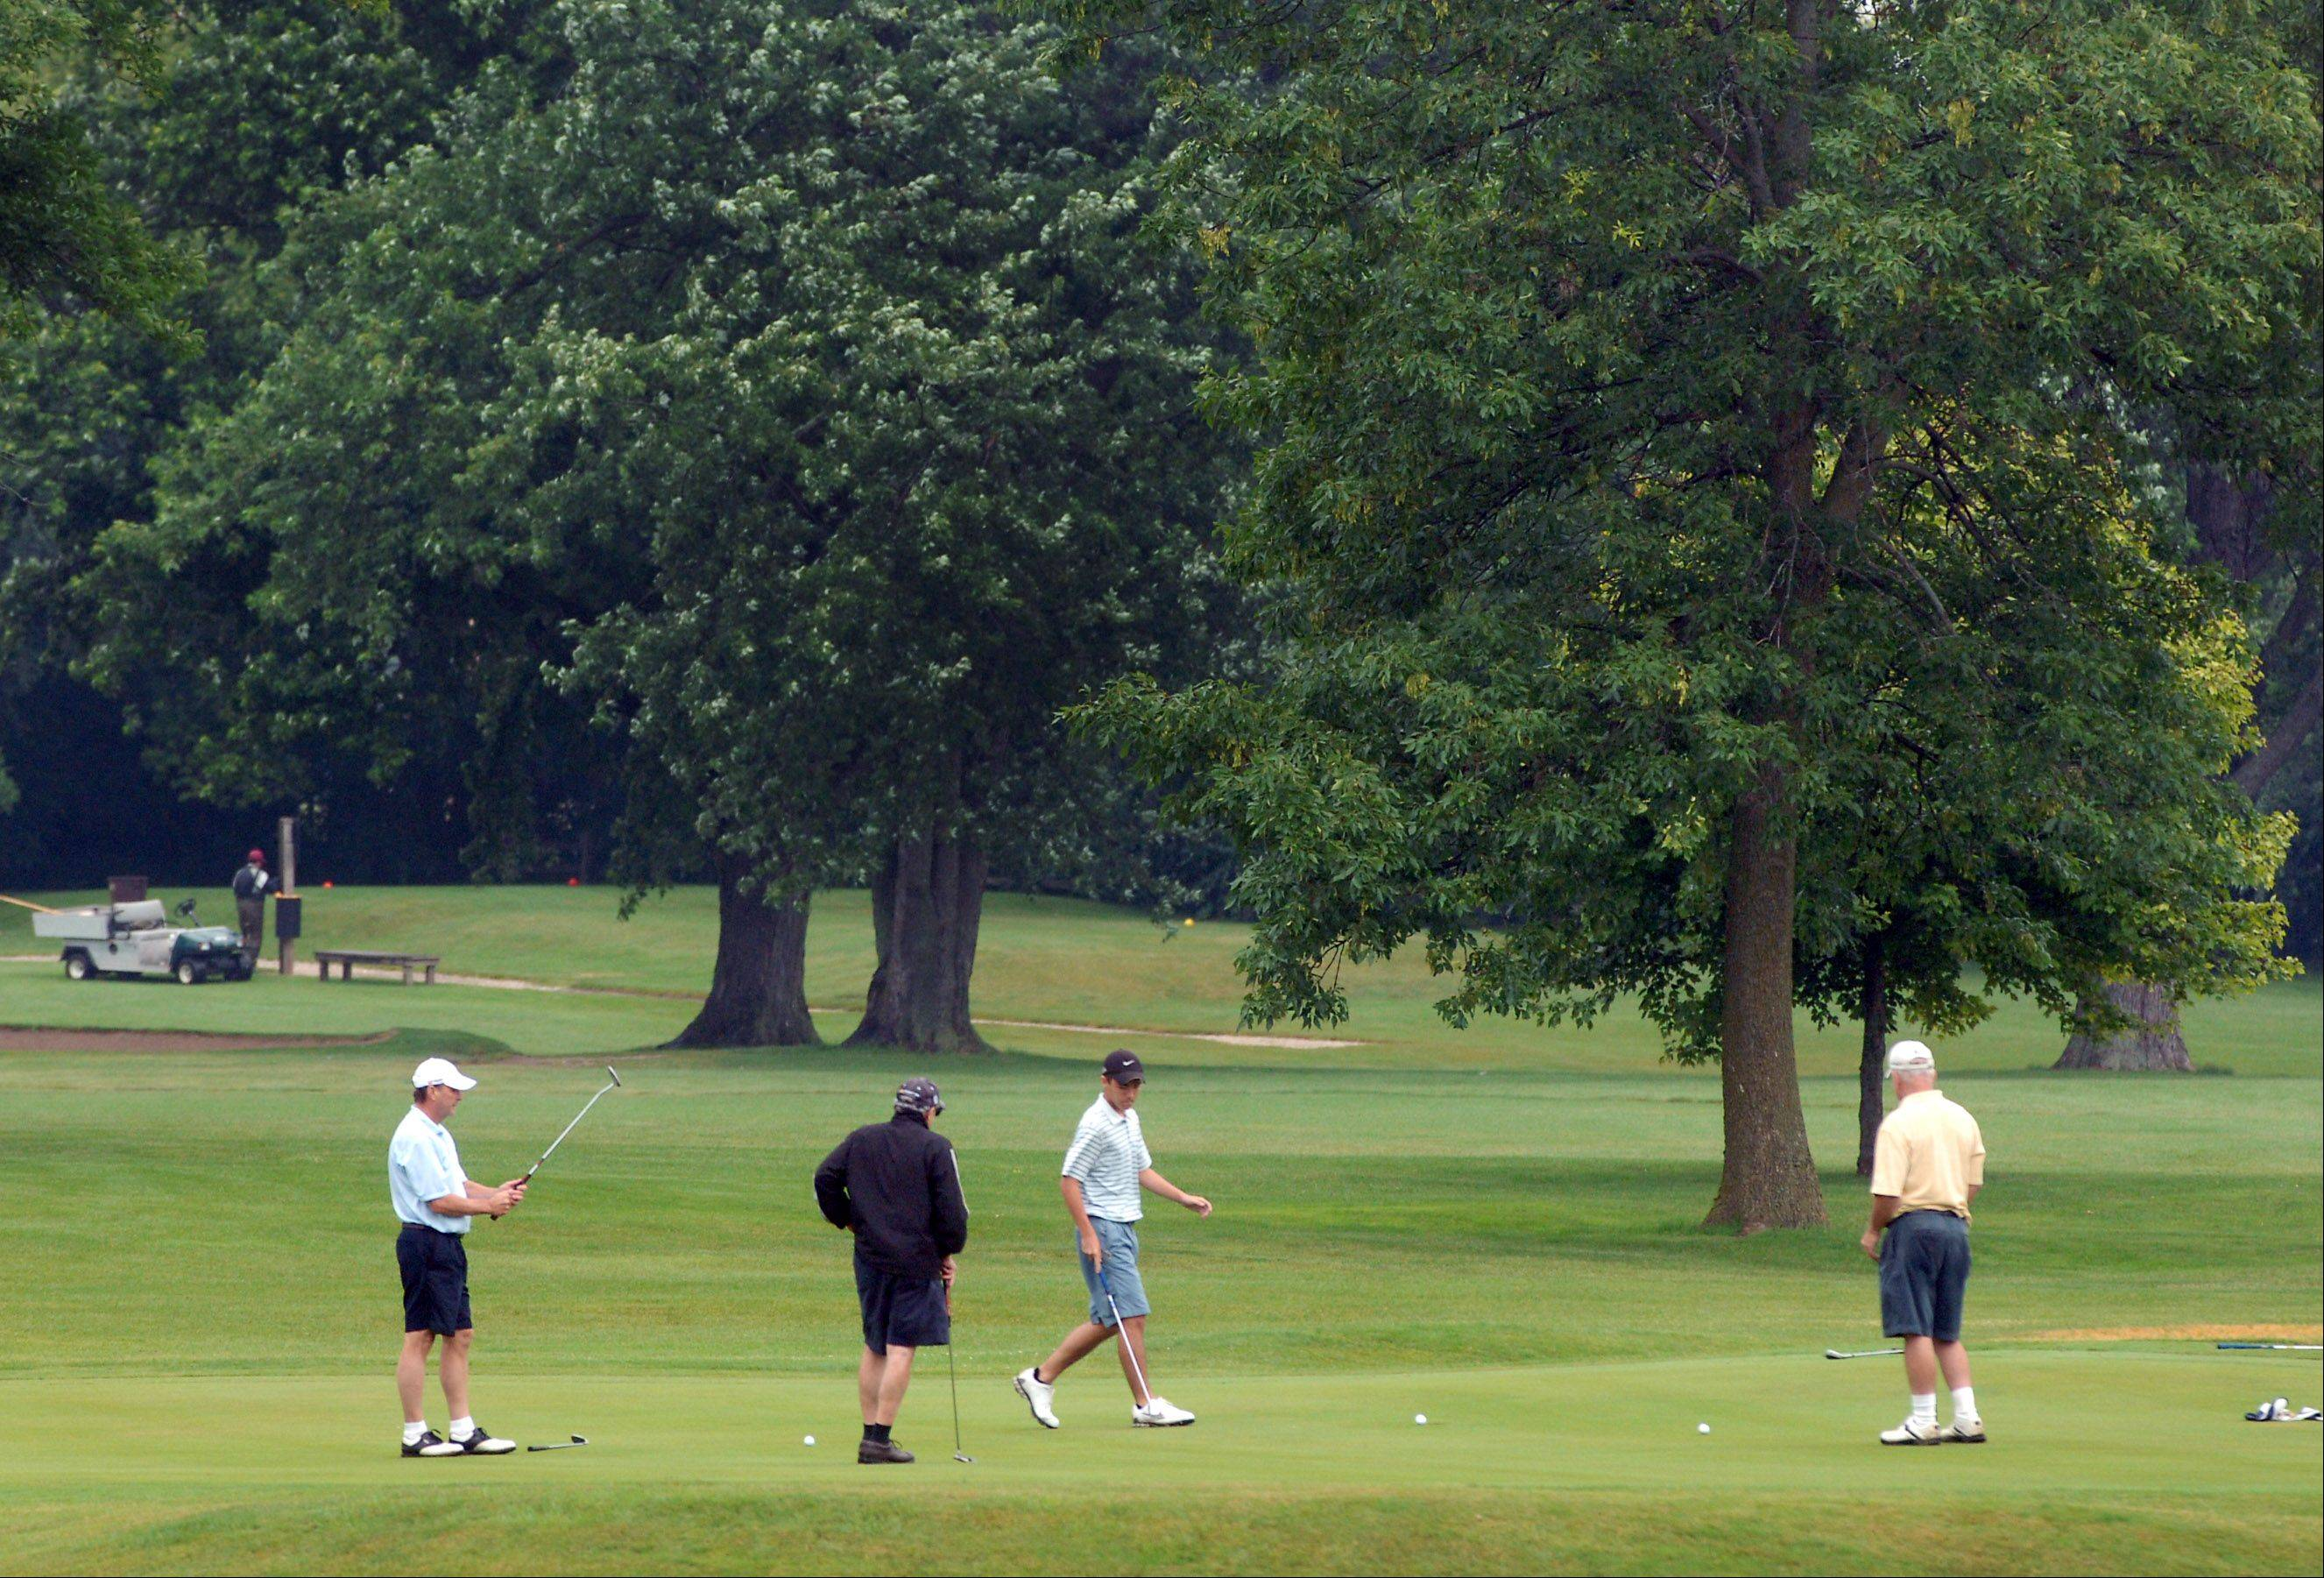 Golfers have been coming out in greater numbers to the Lake County Forest Preserve District courses, including the Brae Loch Golf Club in Grayslake.